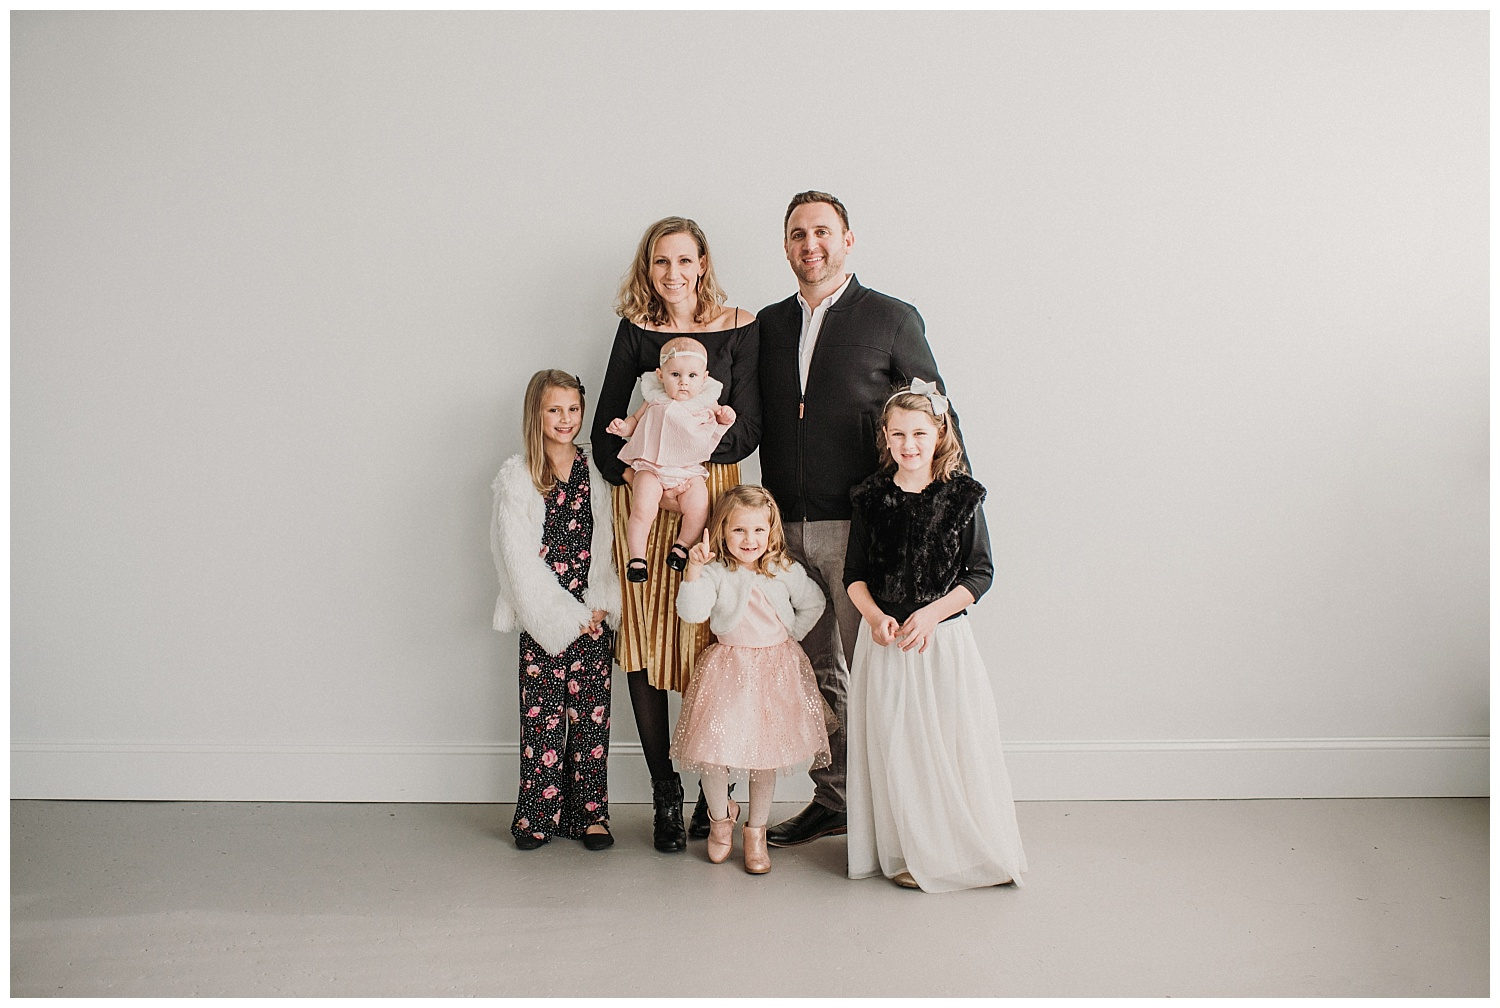 Pewaukee-family-photographer-2019 (1).jpg